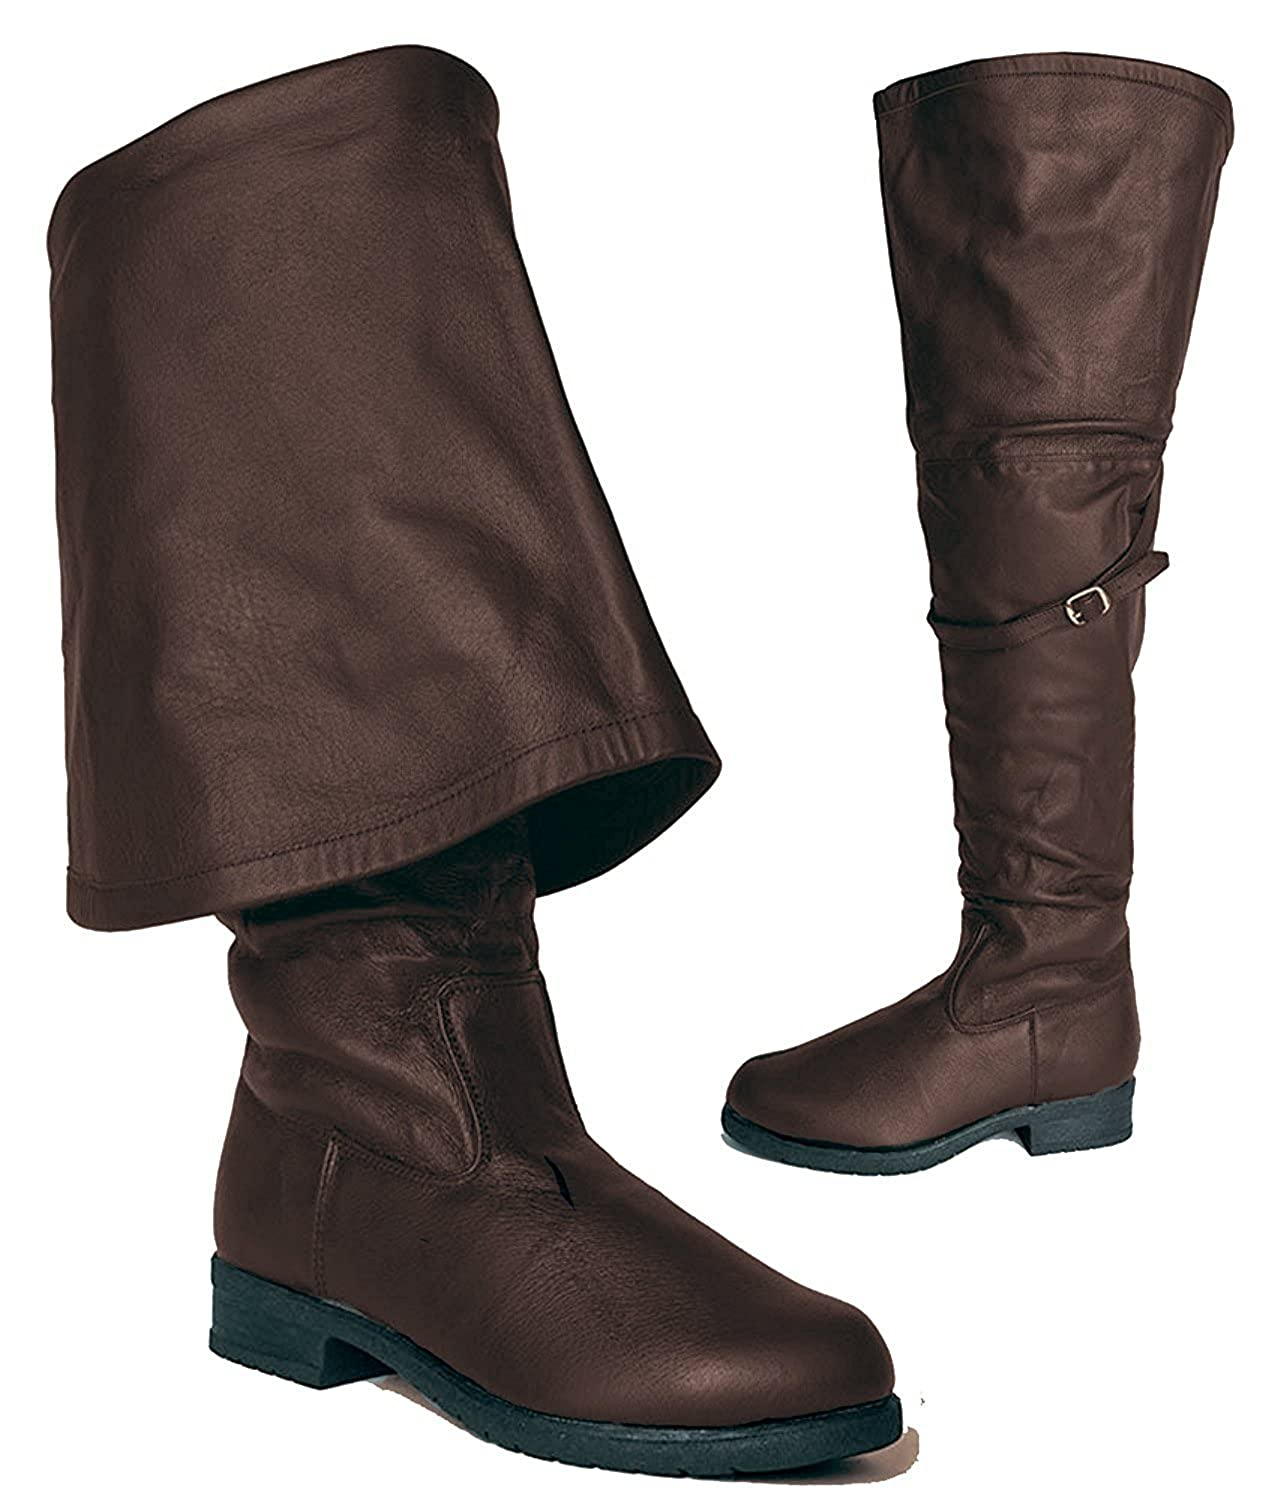 Deluxe Adult Costumes - Men's brown Aassassin's Creed, Renaissance, Medieval, or pirate cosplay costume faux leather boots.